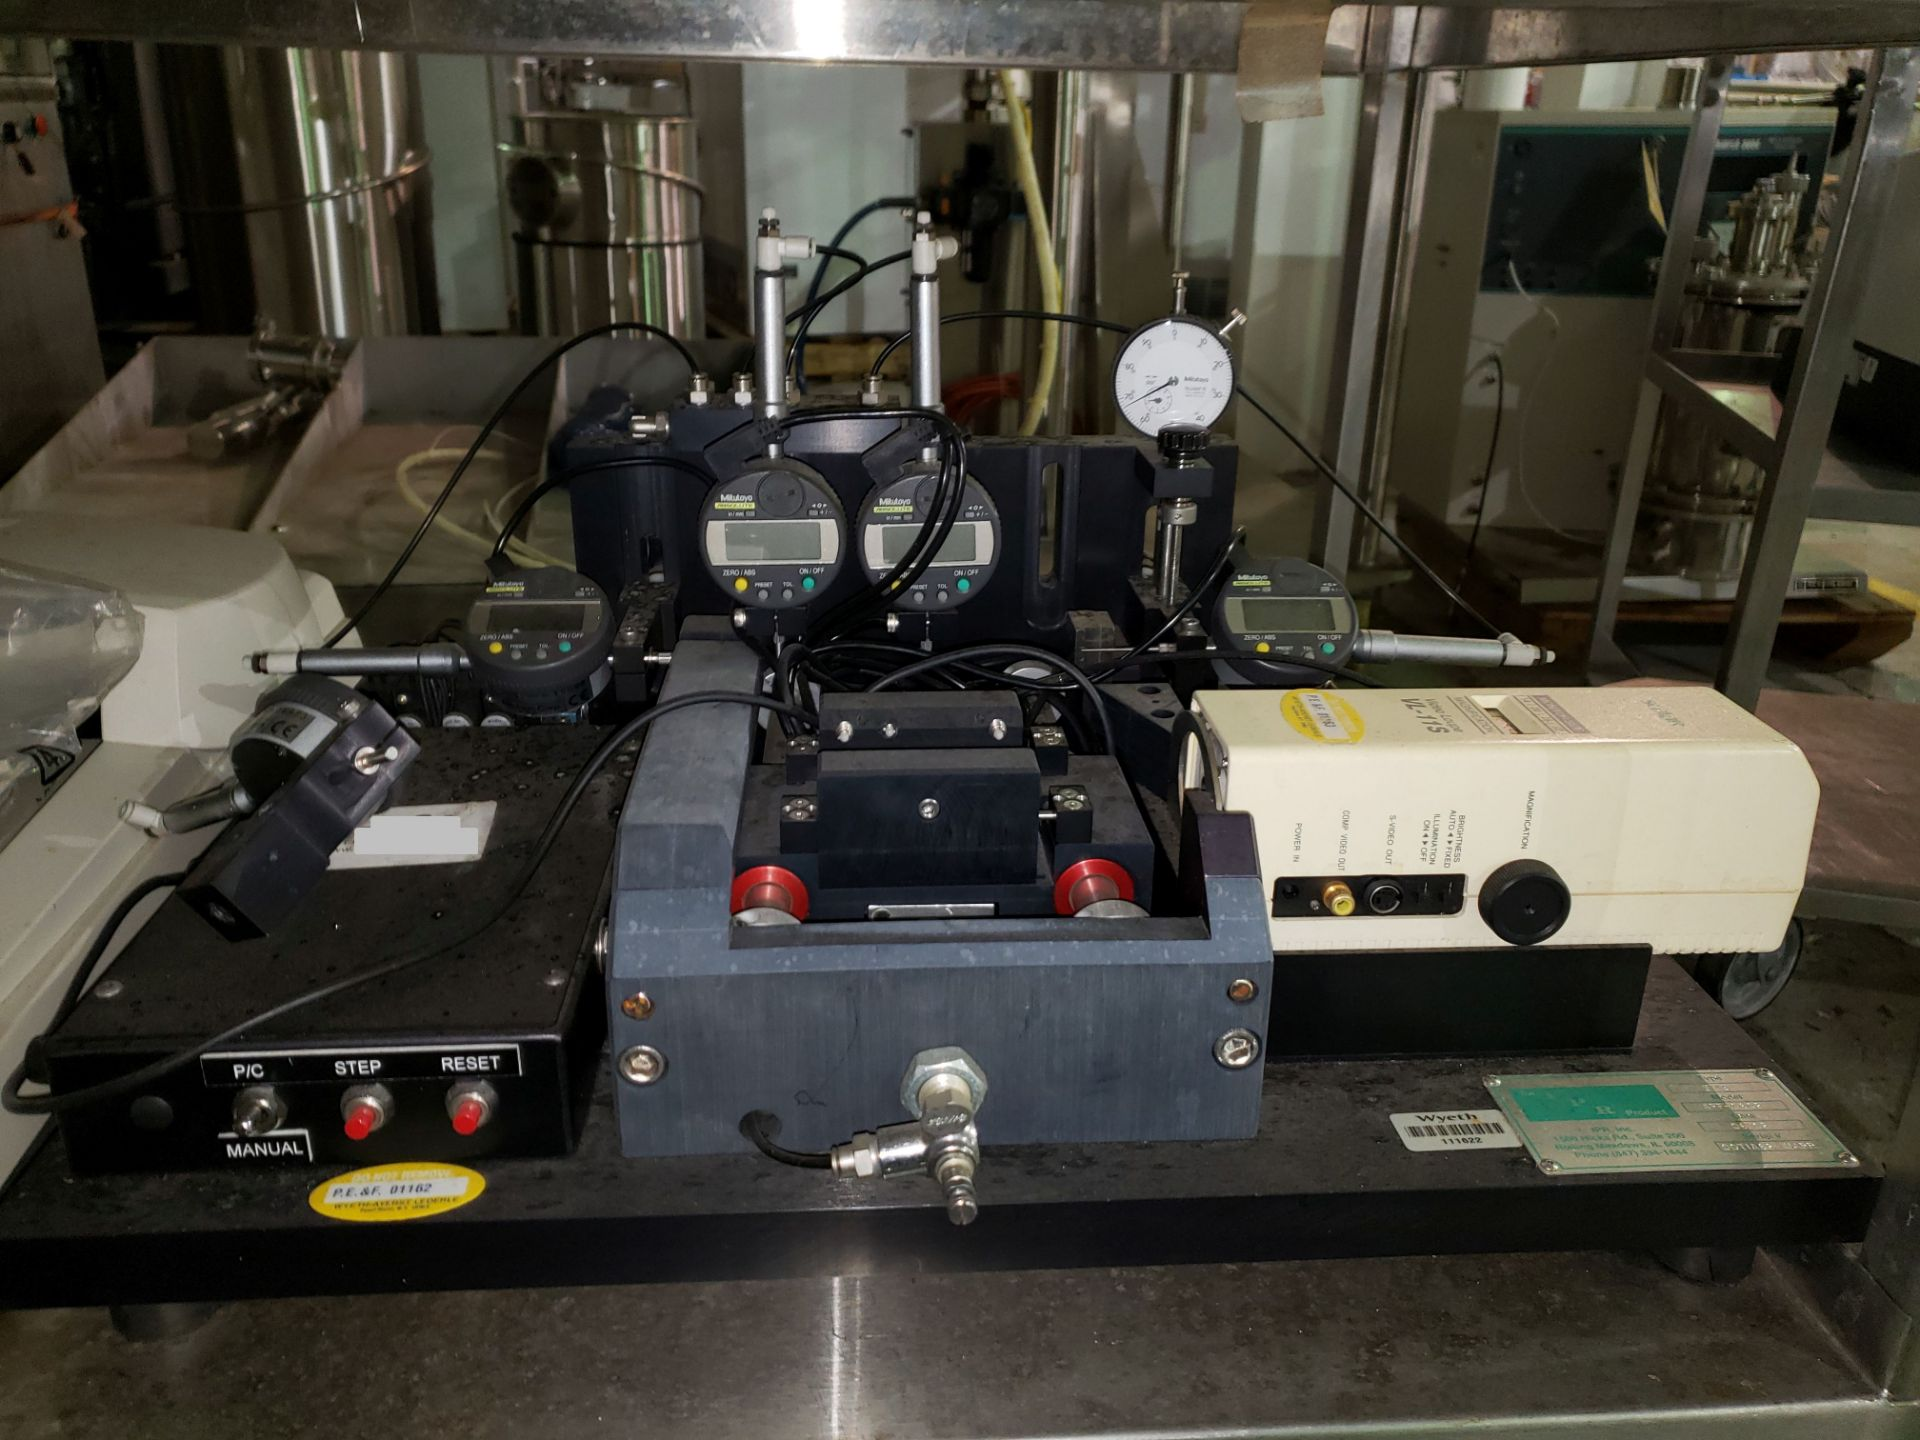 Lot 7 - IPR tablet press tooling inspection unit, type TIAS, model APF-0602 with computer, serial# 00TIA62-